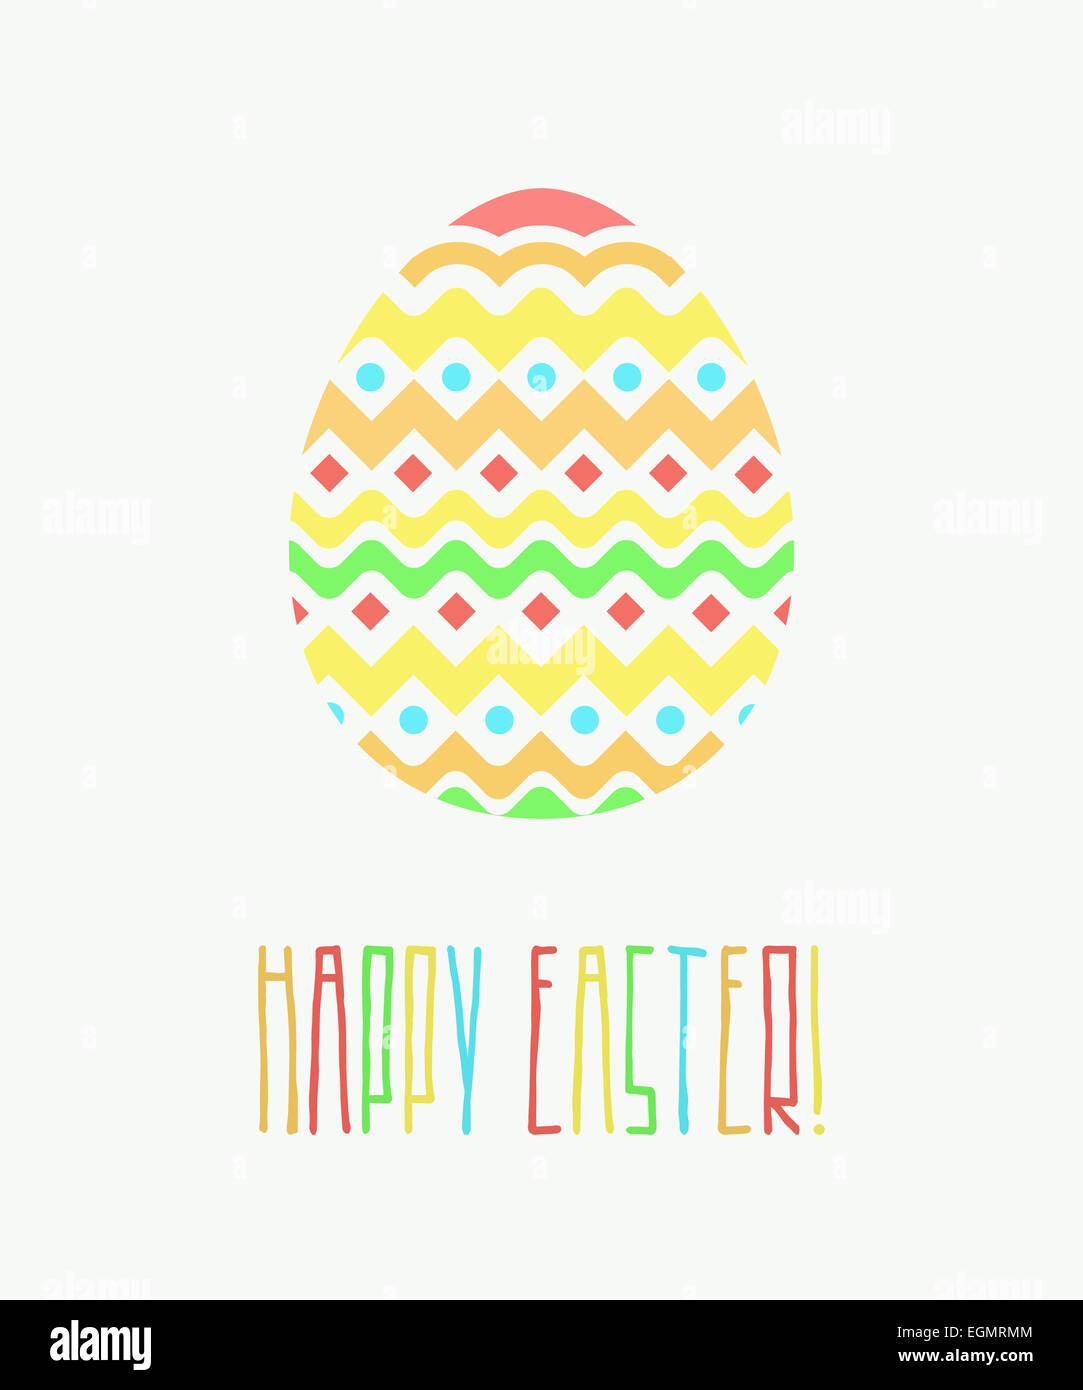 Colorful happy easter greeting card with decorative egg and words on colorful happy easter greeting card with decorative egg and words on white background in flat hand drawn design m4hsunfo